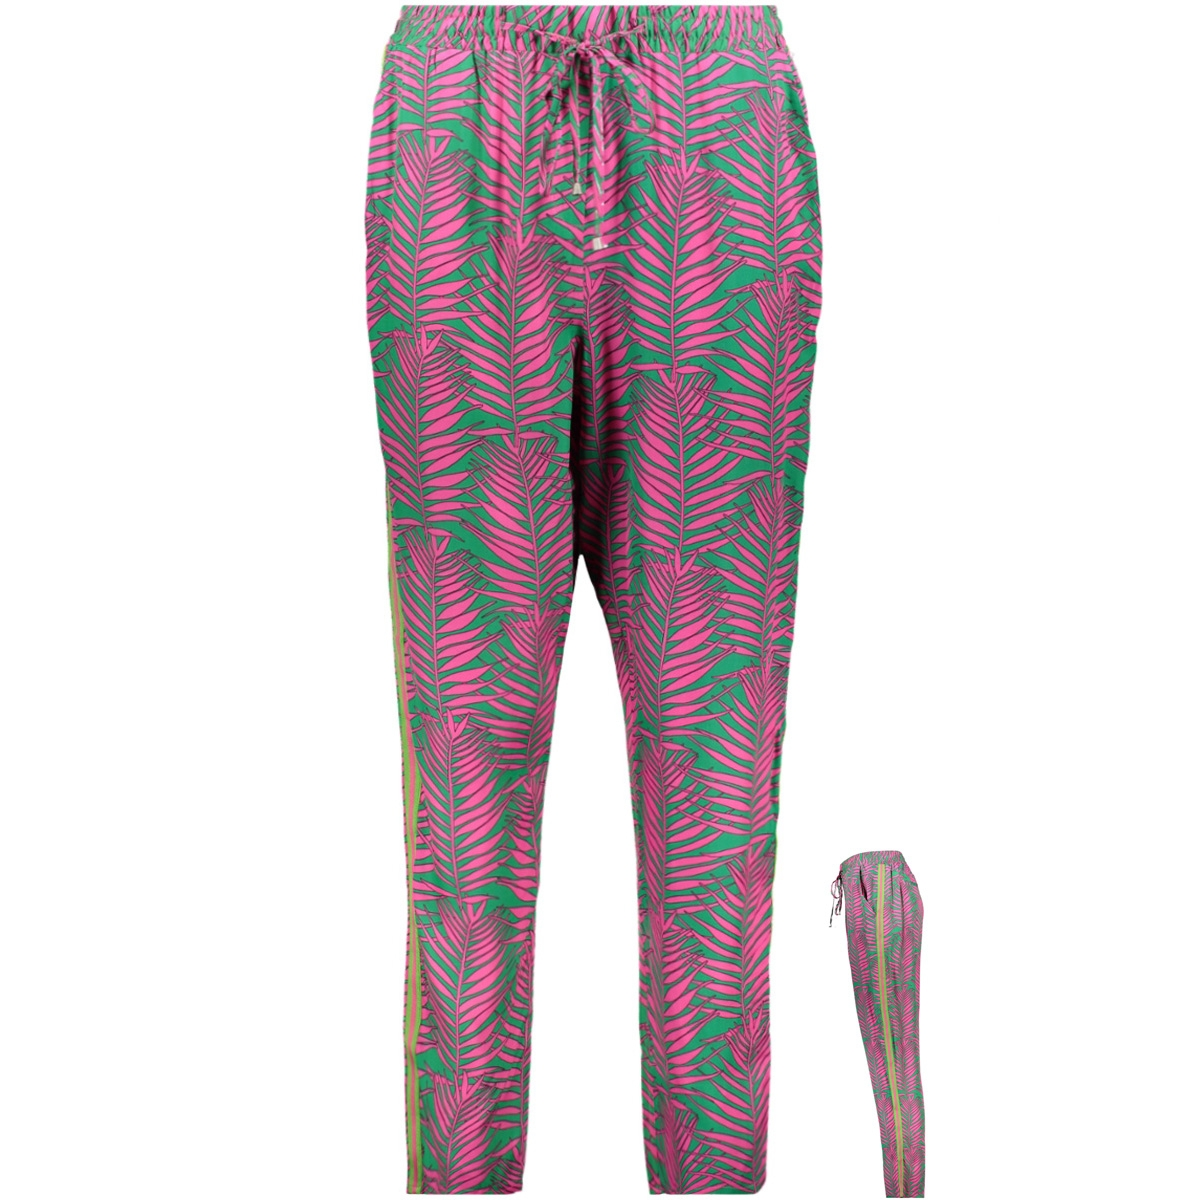 viscose trouser 0319 0511 smith & soul broek 5569 green pink